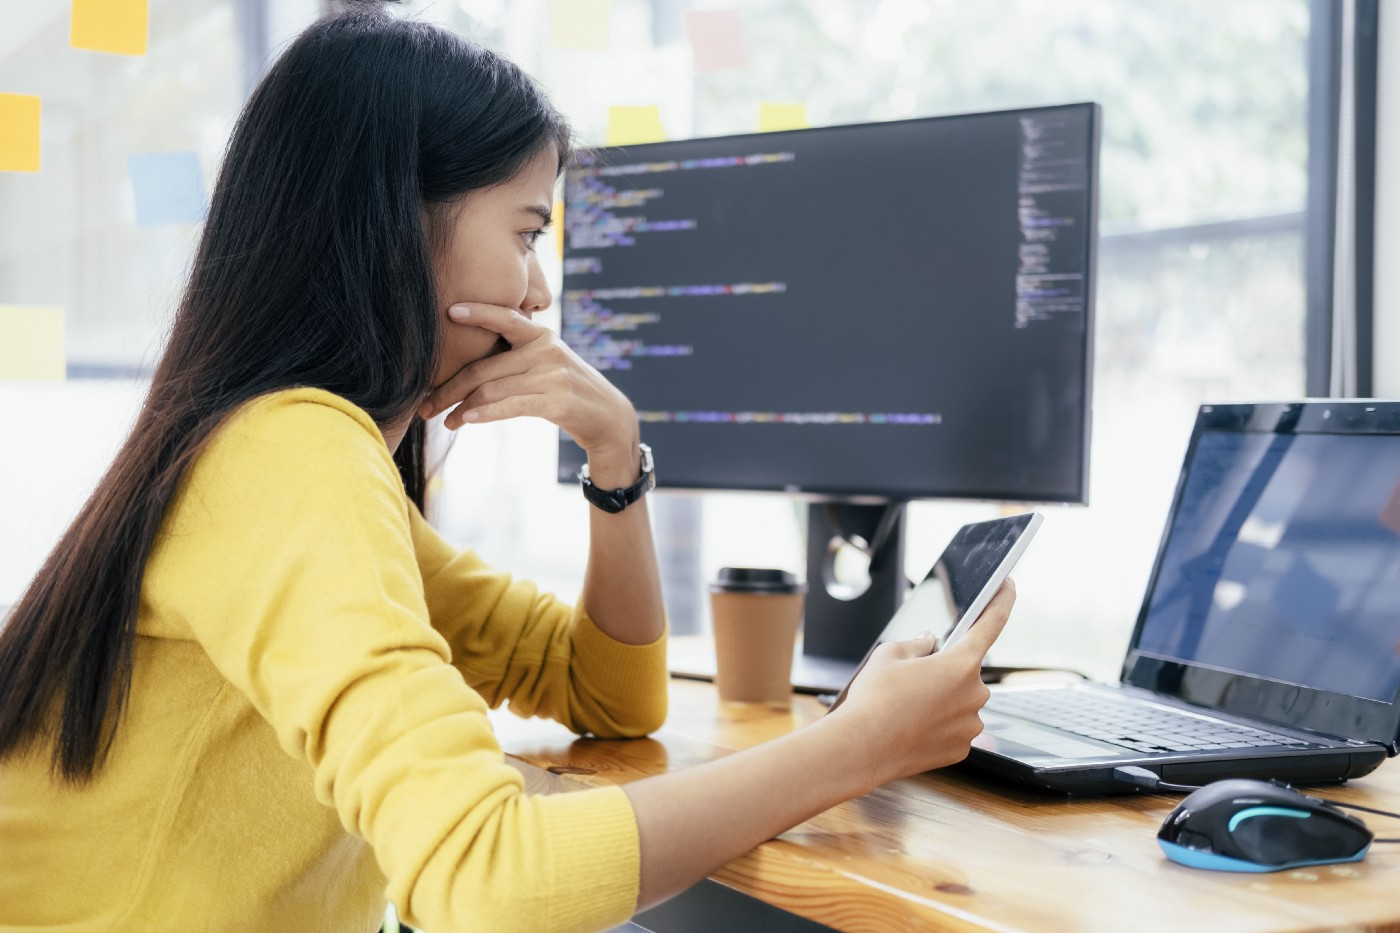 A woman looks at her laptop deep in thought, looking at the results of a business experiment.